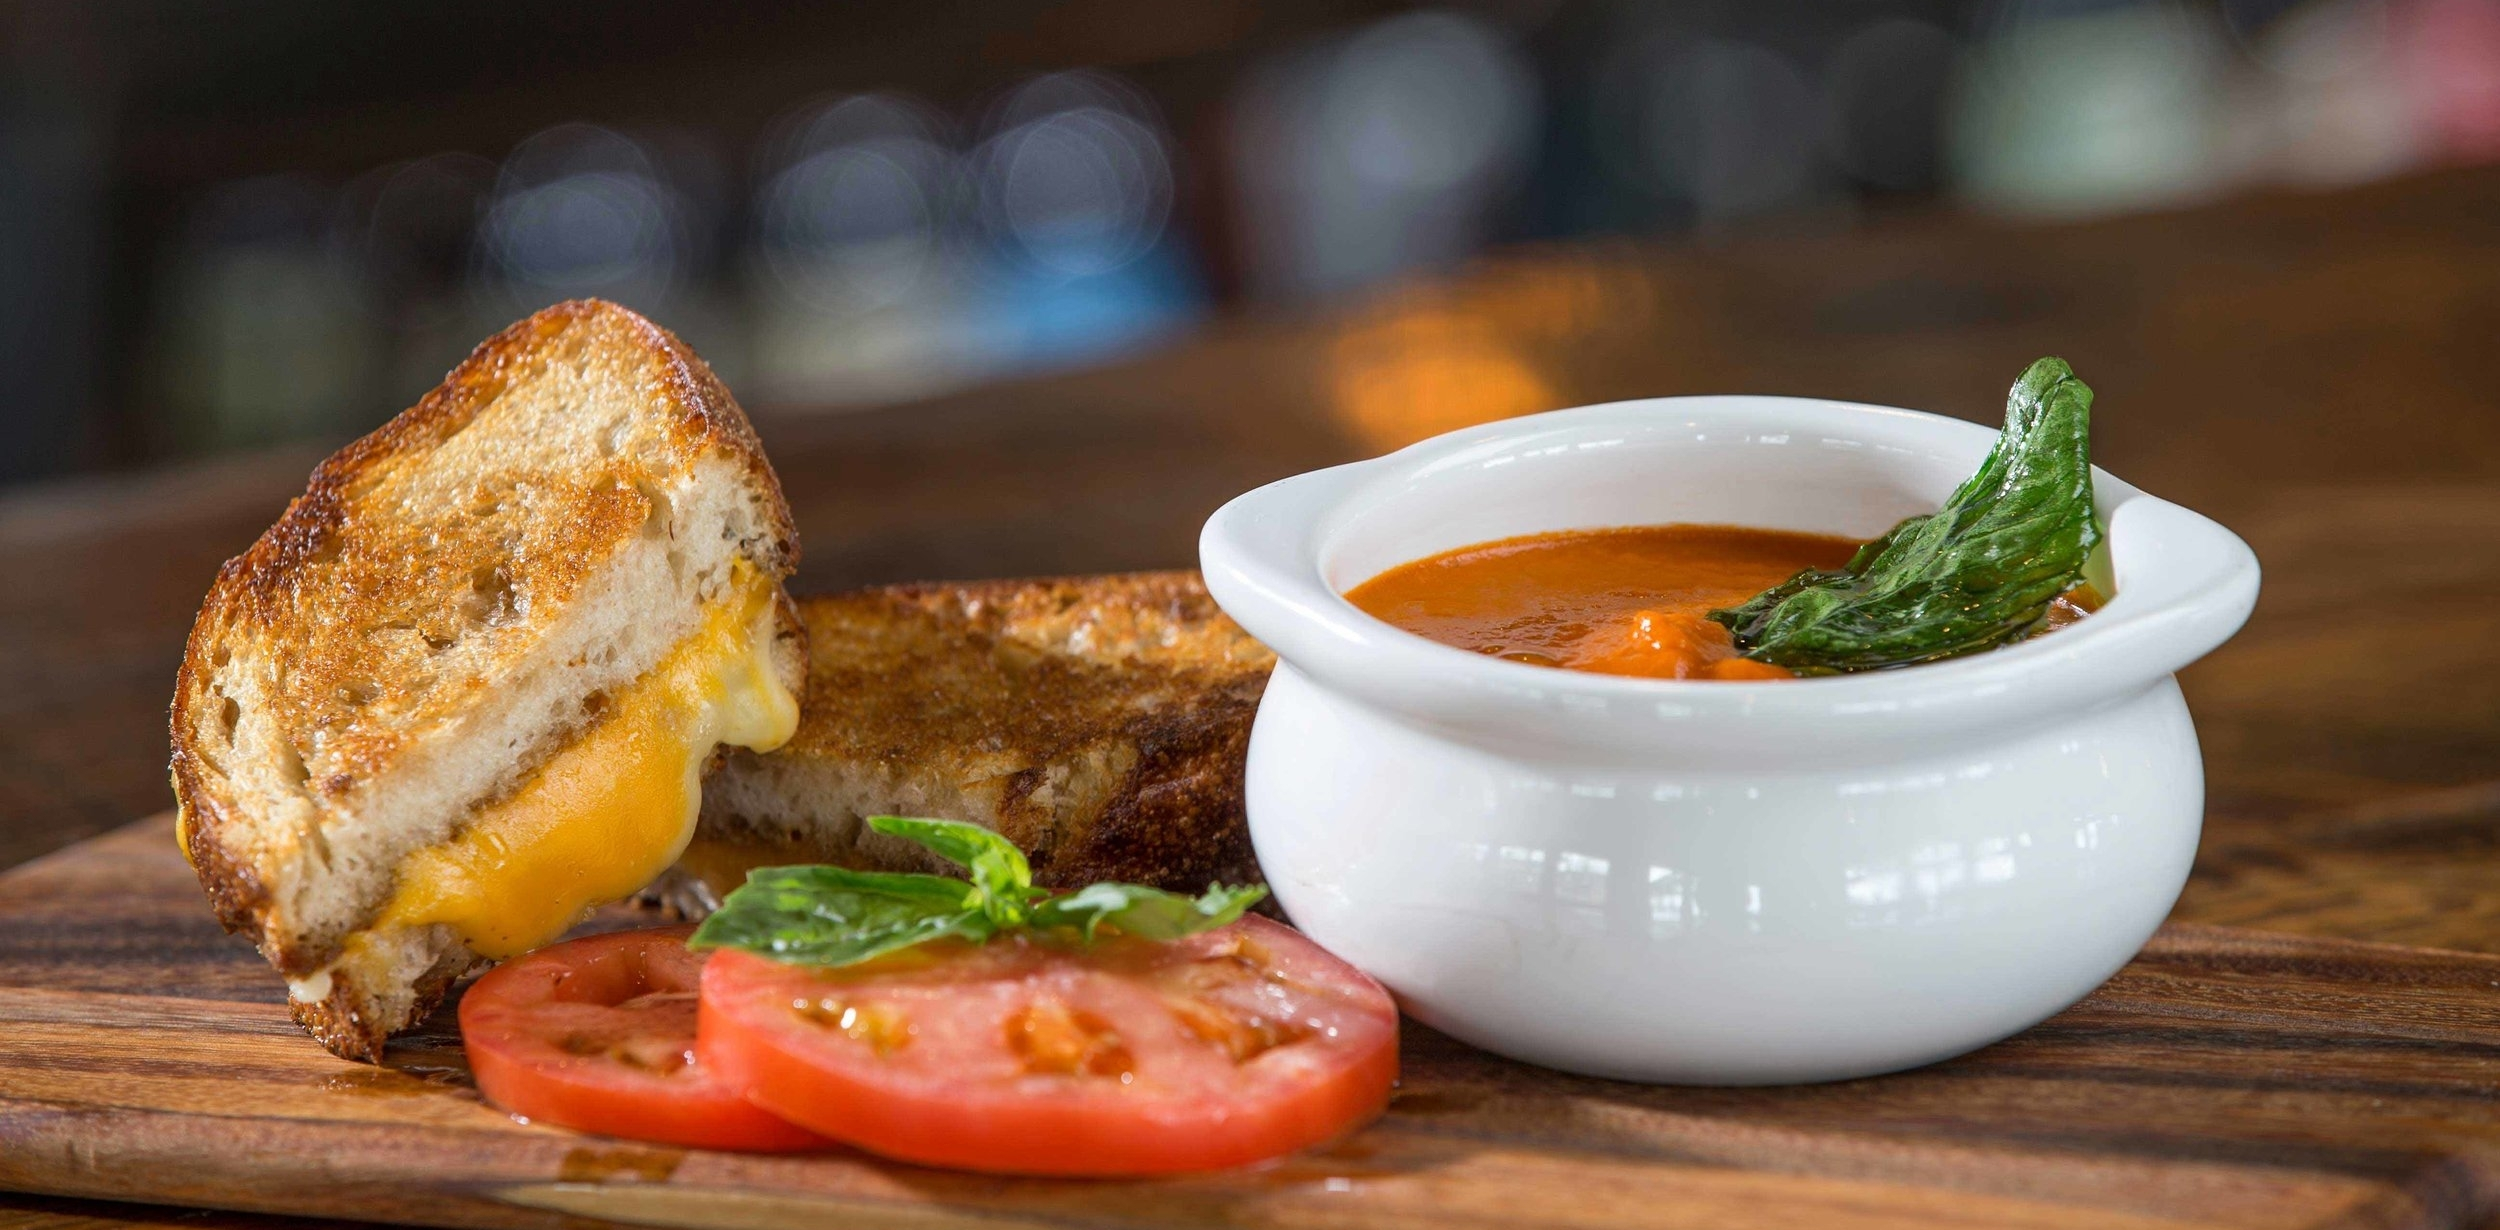 Highlands-Alehouse-Awesome-Grilled-Cheese.jpg